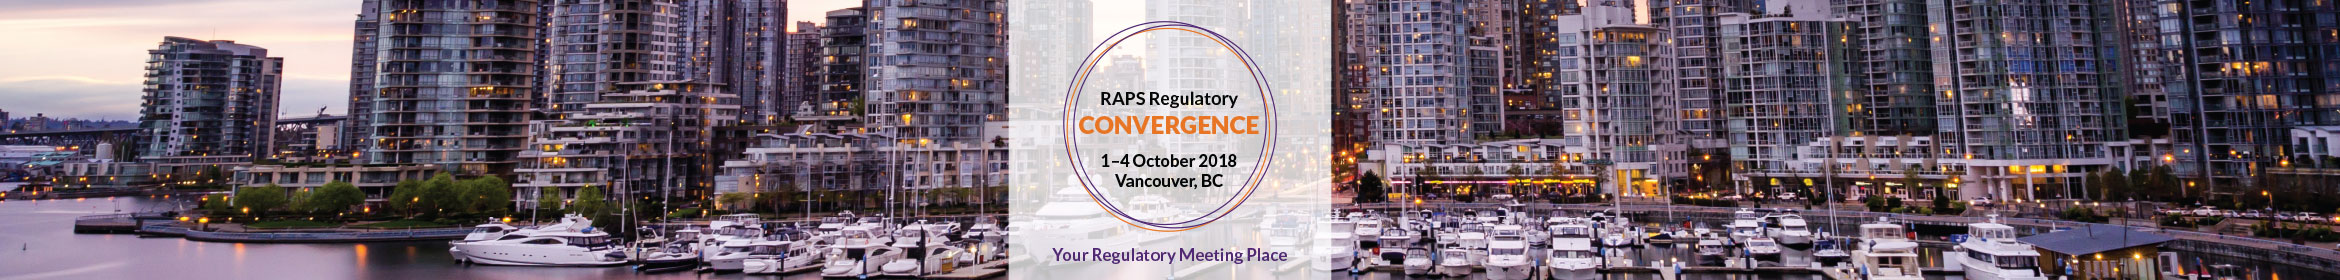 2018 RAPS Regulatory Convergence Main banner